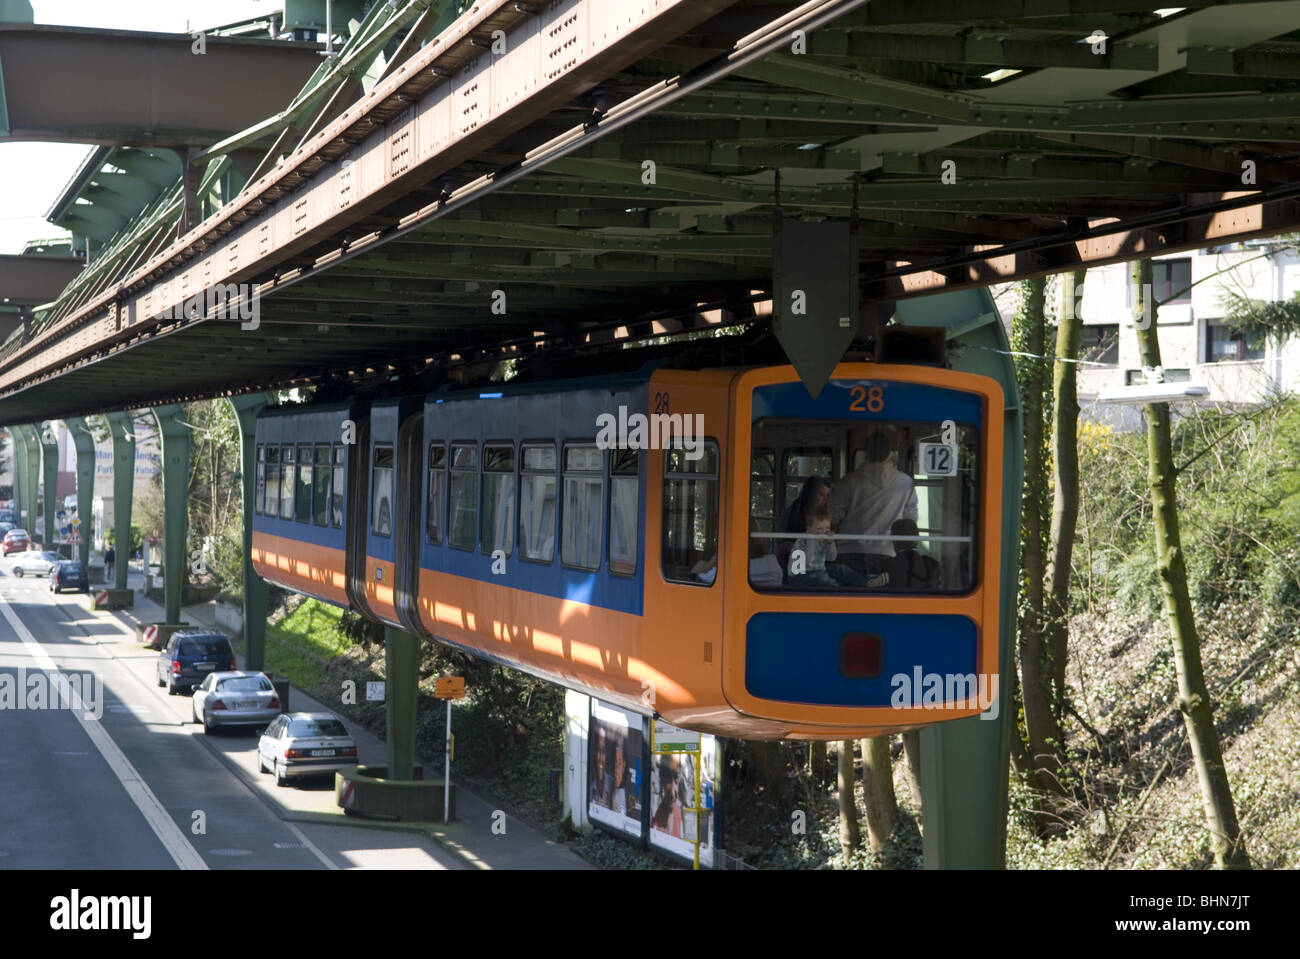 geography / travel, Germany, North Rhine-Westphalia, Bergisches Land, Wuppertal, suspension  railway, Additional Stock Photo